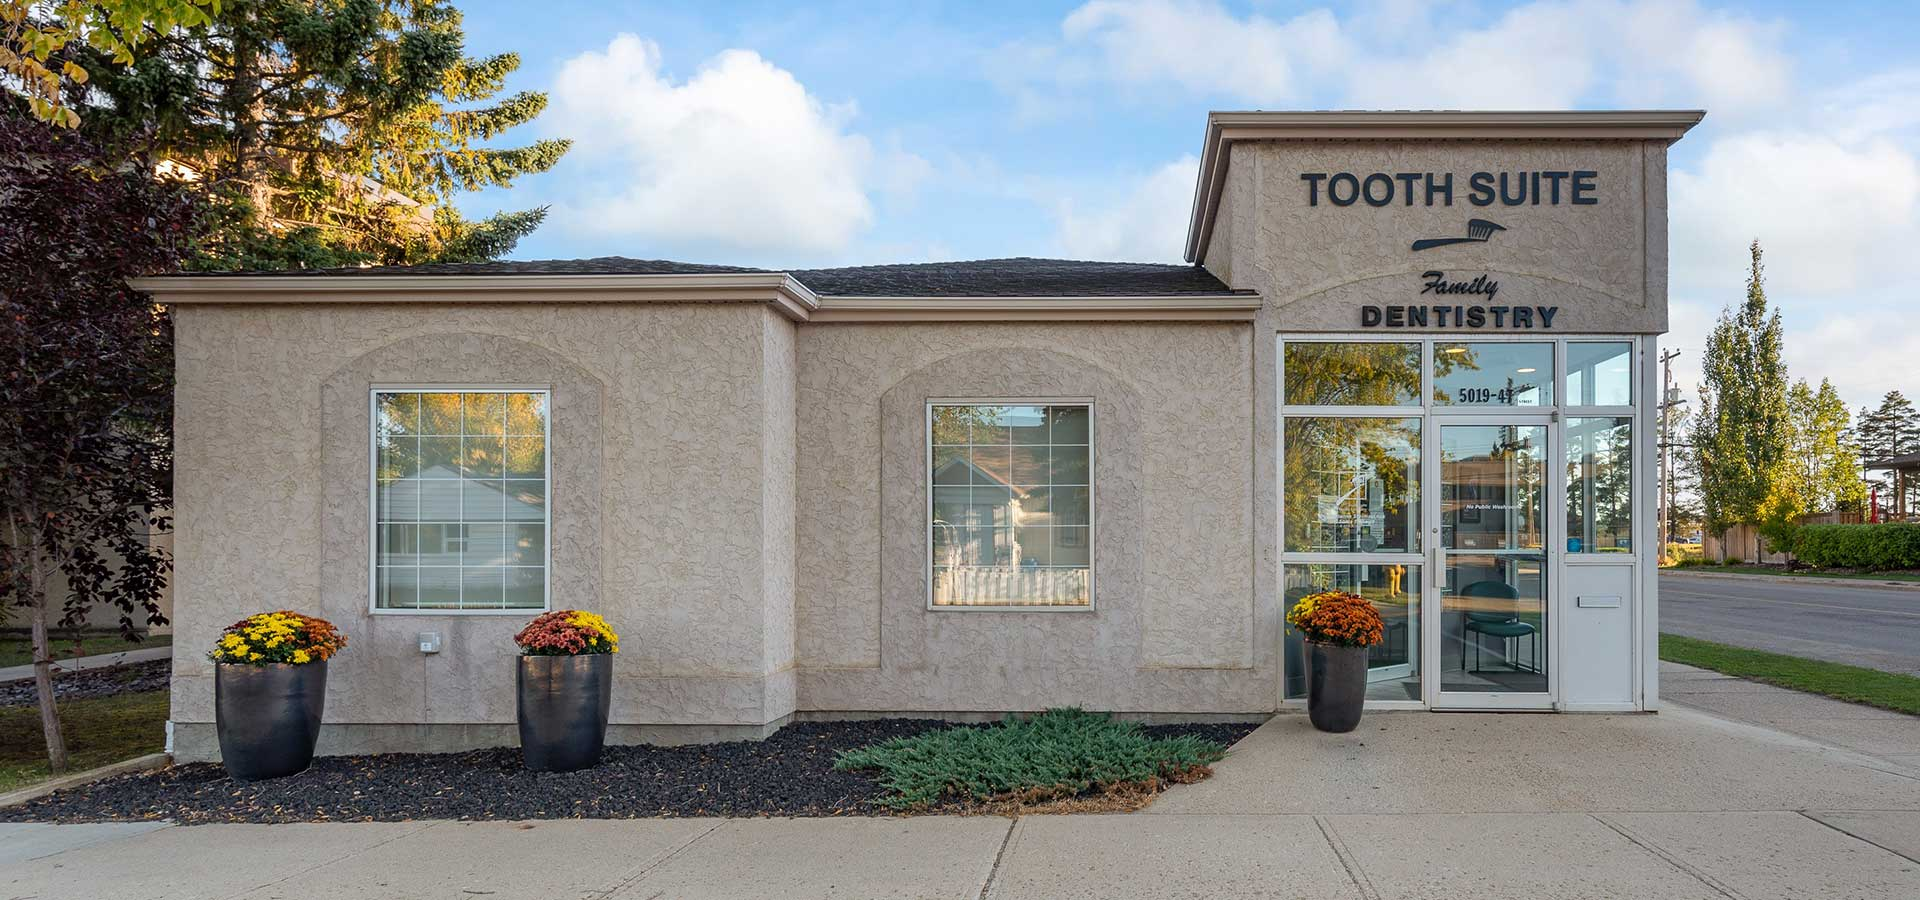 Front of Building | Tooth Suite Family Dentistry | Lloydminster Family Dentist